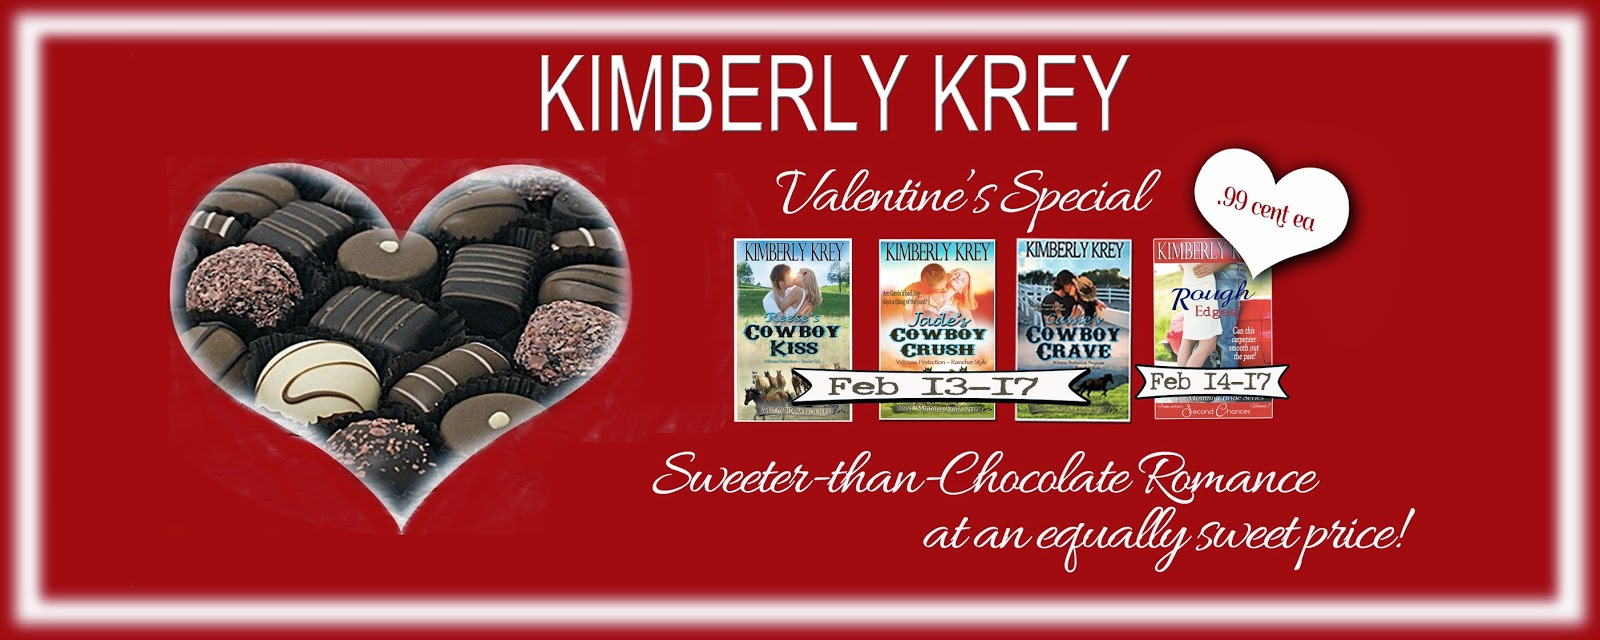 http://www.amazon.com/Kimberly-Krey/e/B009A0350I/ref=series_rw_dp_ta